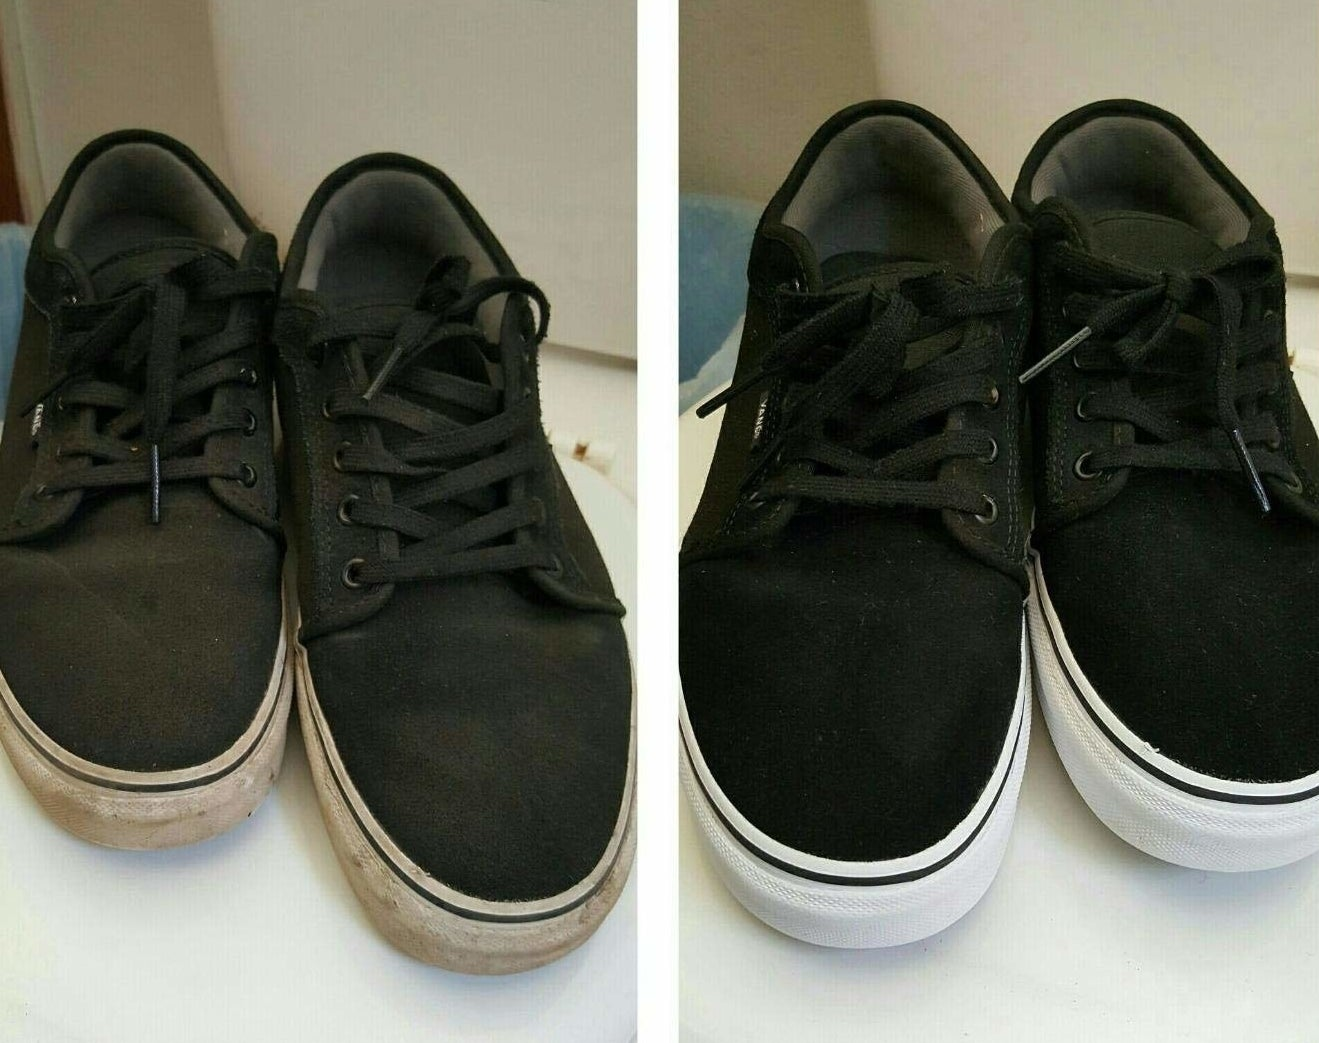 Reviewer photos showing a pair of shoes before and after getting cleaned with the kit. The dirty shoes are completely restored to a new appearance